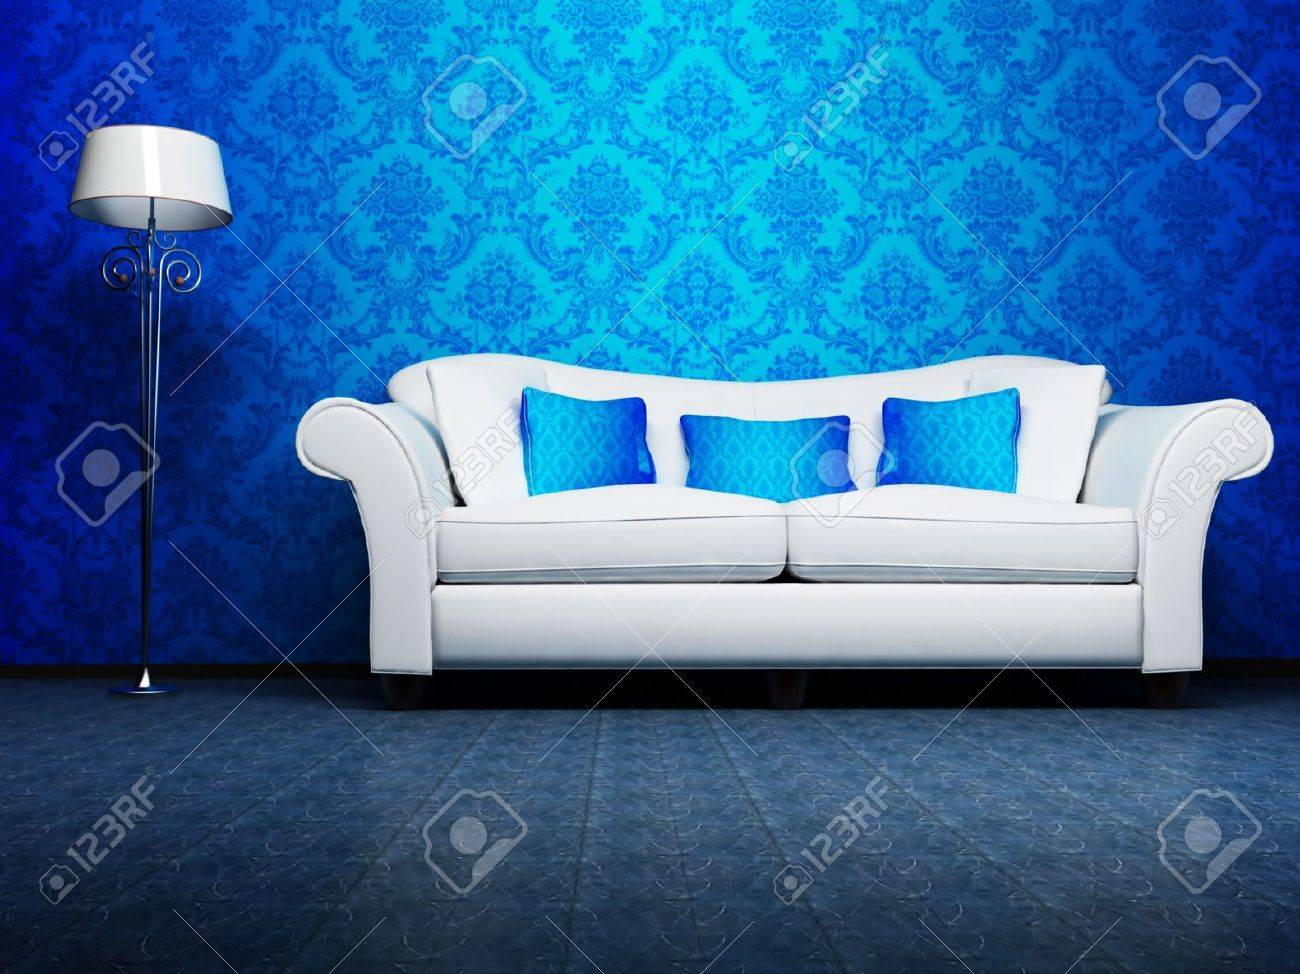 Indoor Parquet Blue Wallpaper Modern Interior Design Of Living Room With A Sofa And